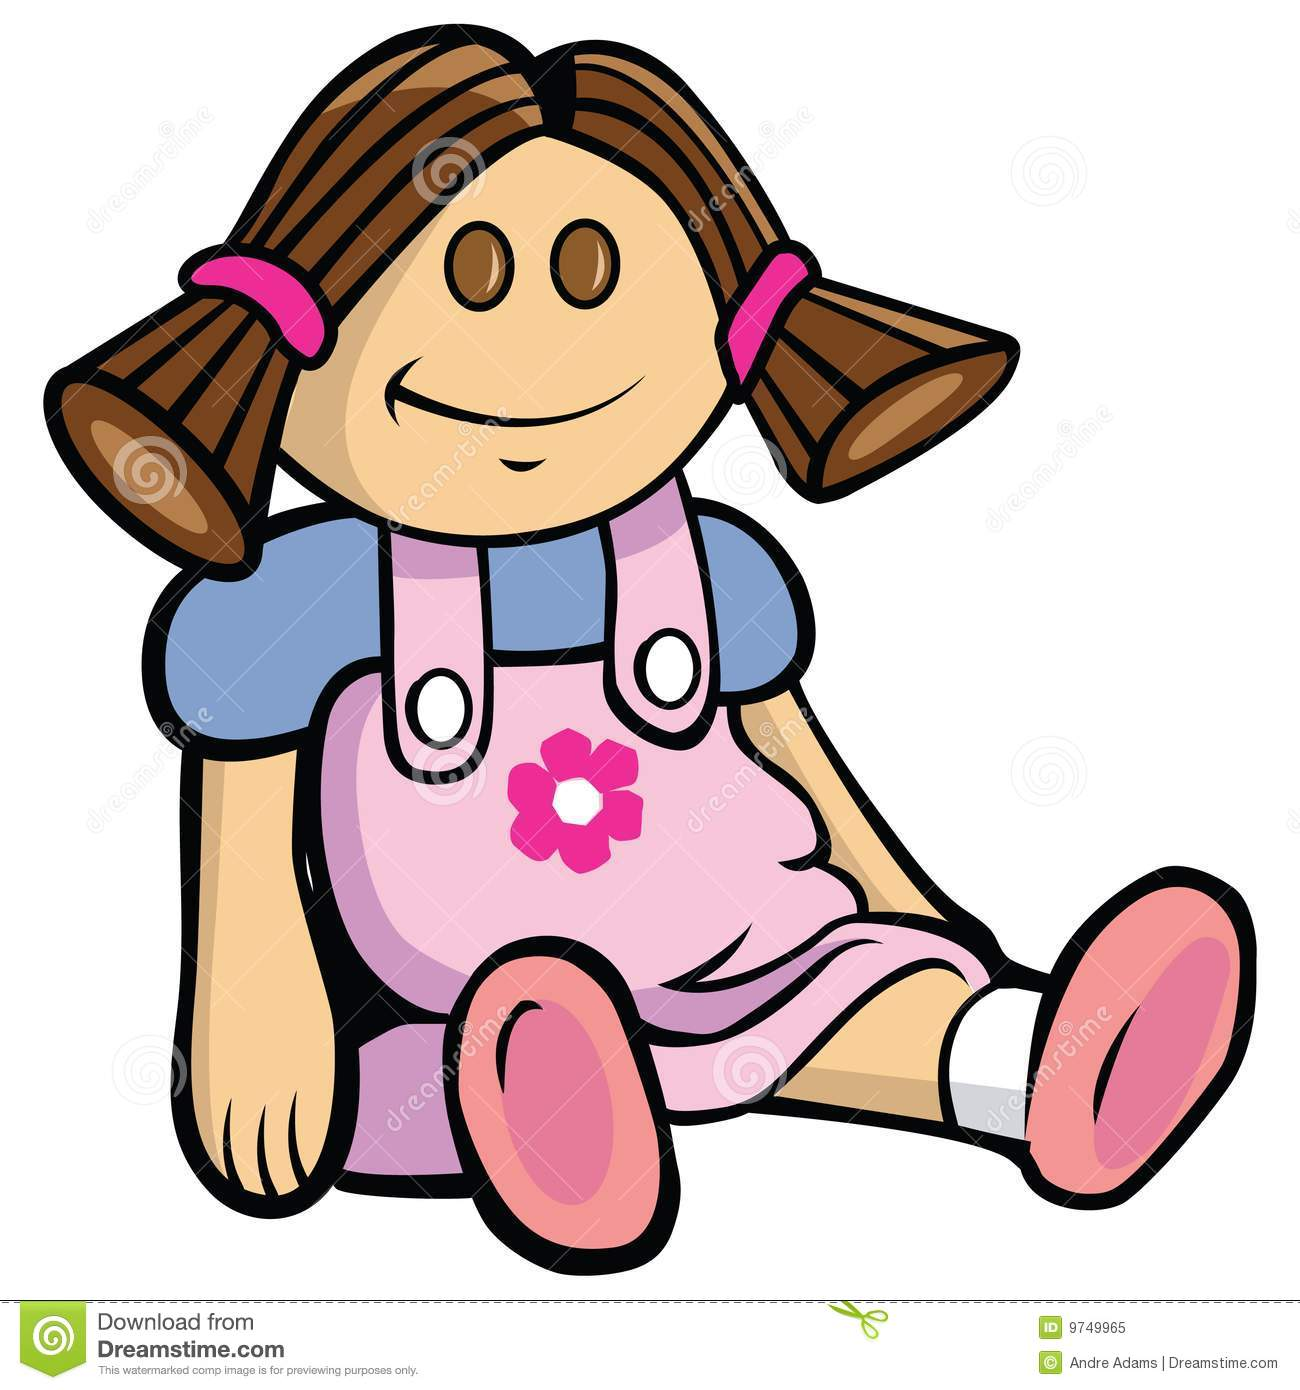 Ragdoll clipart Doll clipart Download clipart Download